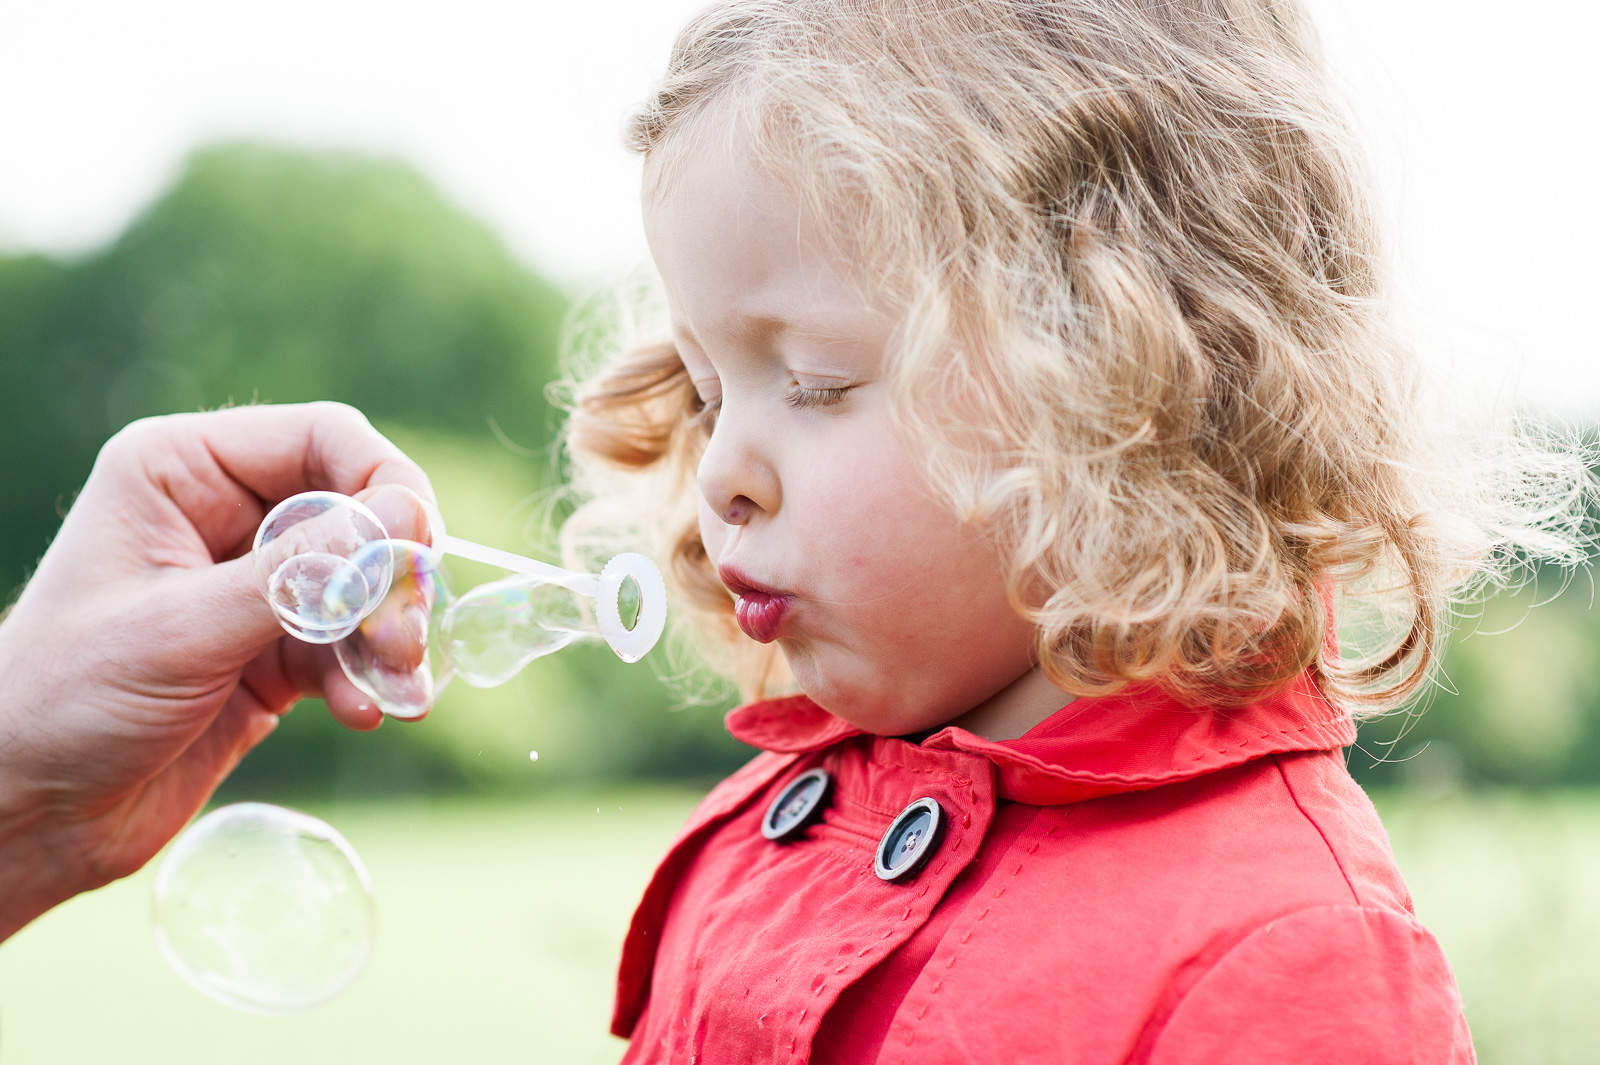 Little girl blowing bubbles creative family photographer Surrey